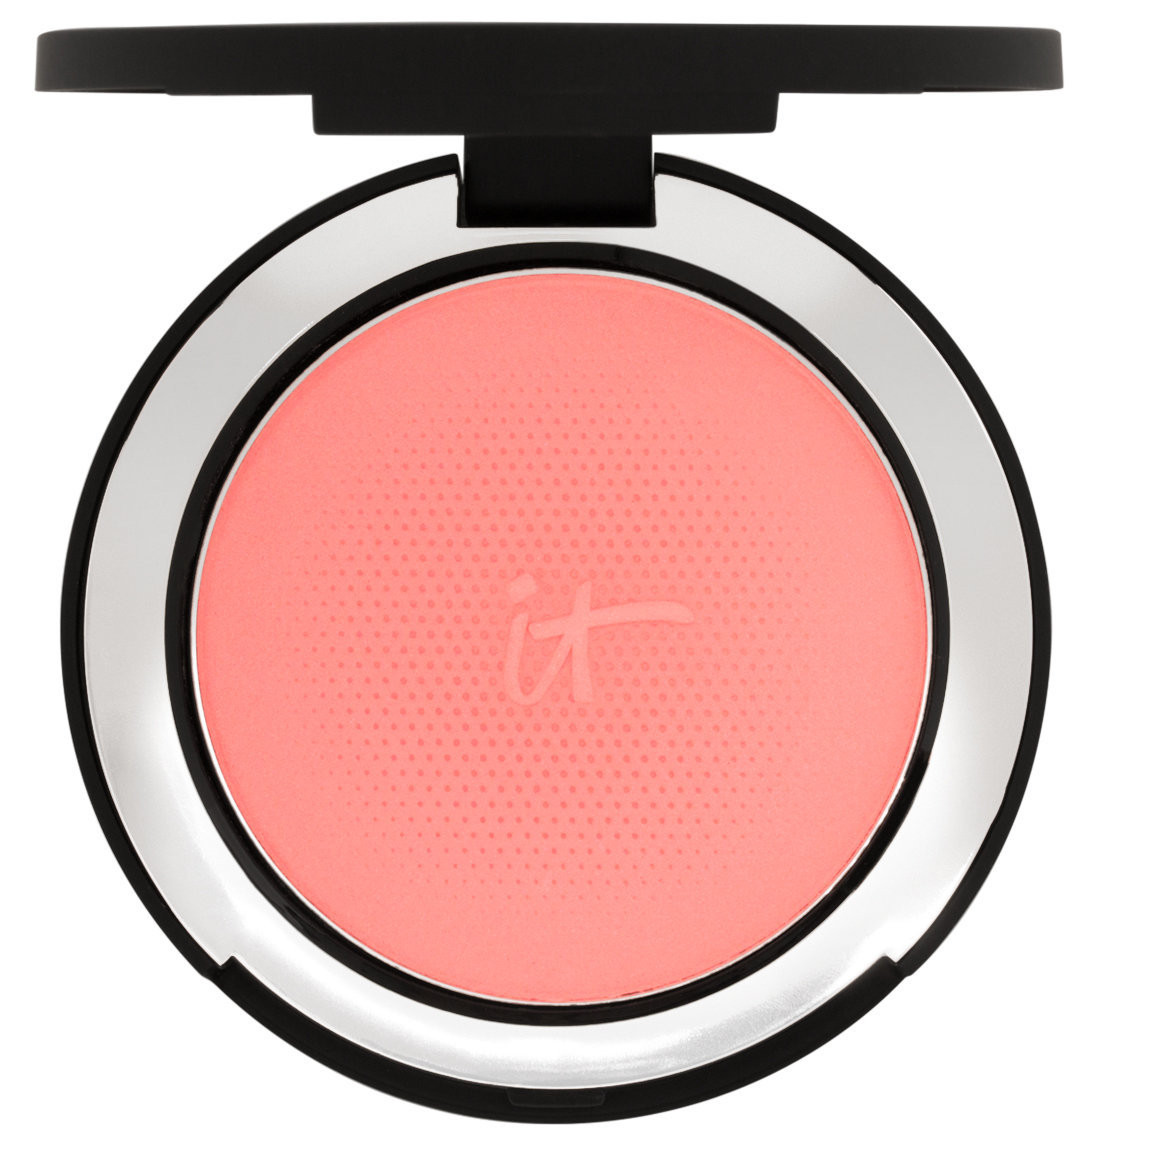 IT Cosmetics  Bye Bye Pores Blush  Je Ne Sais Quoi product smear.